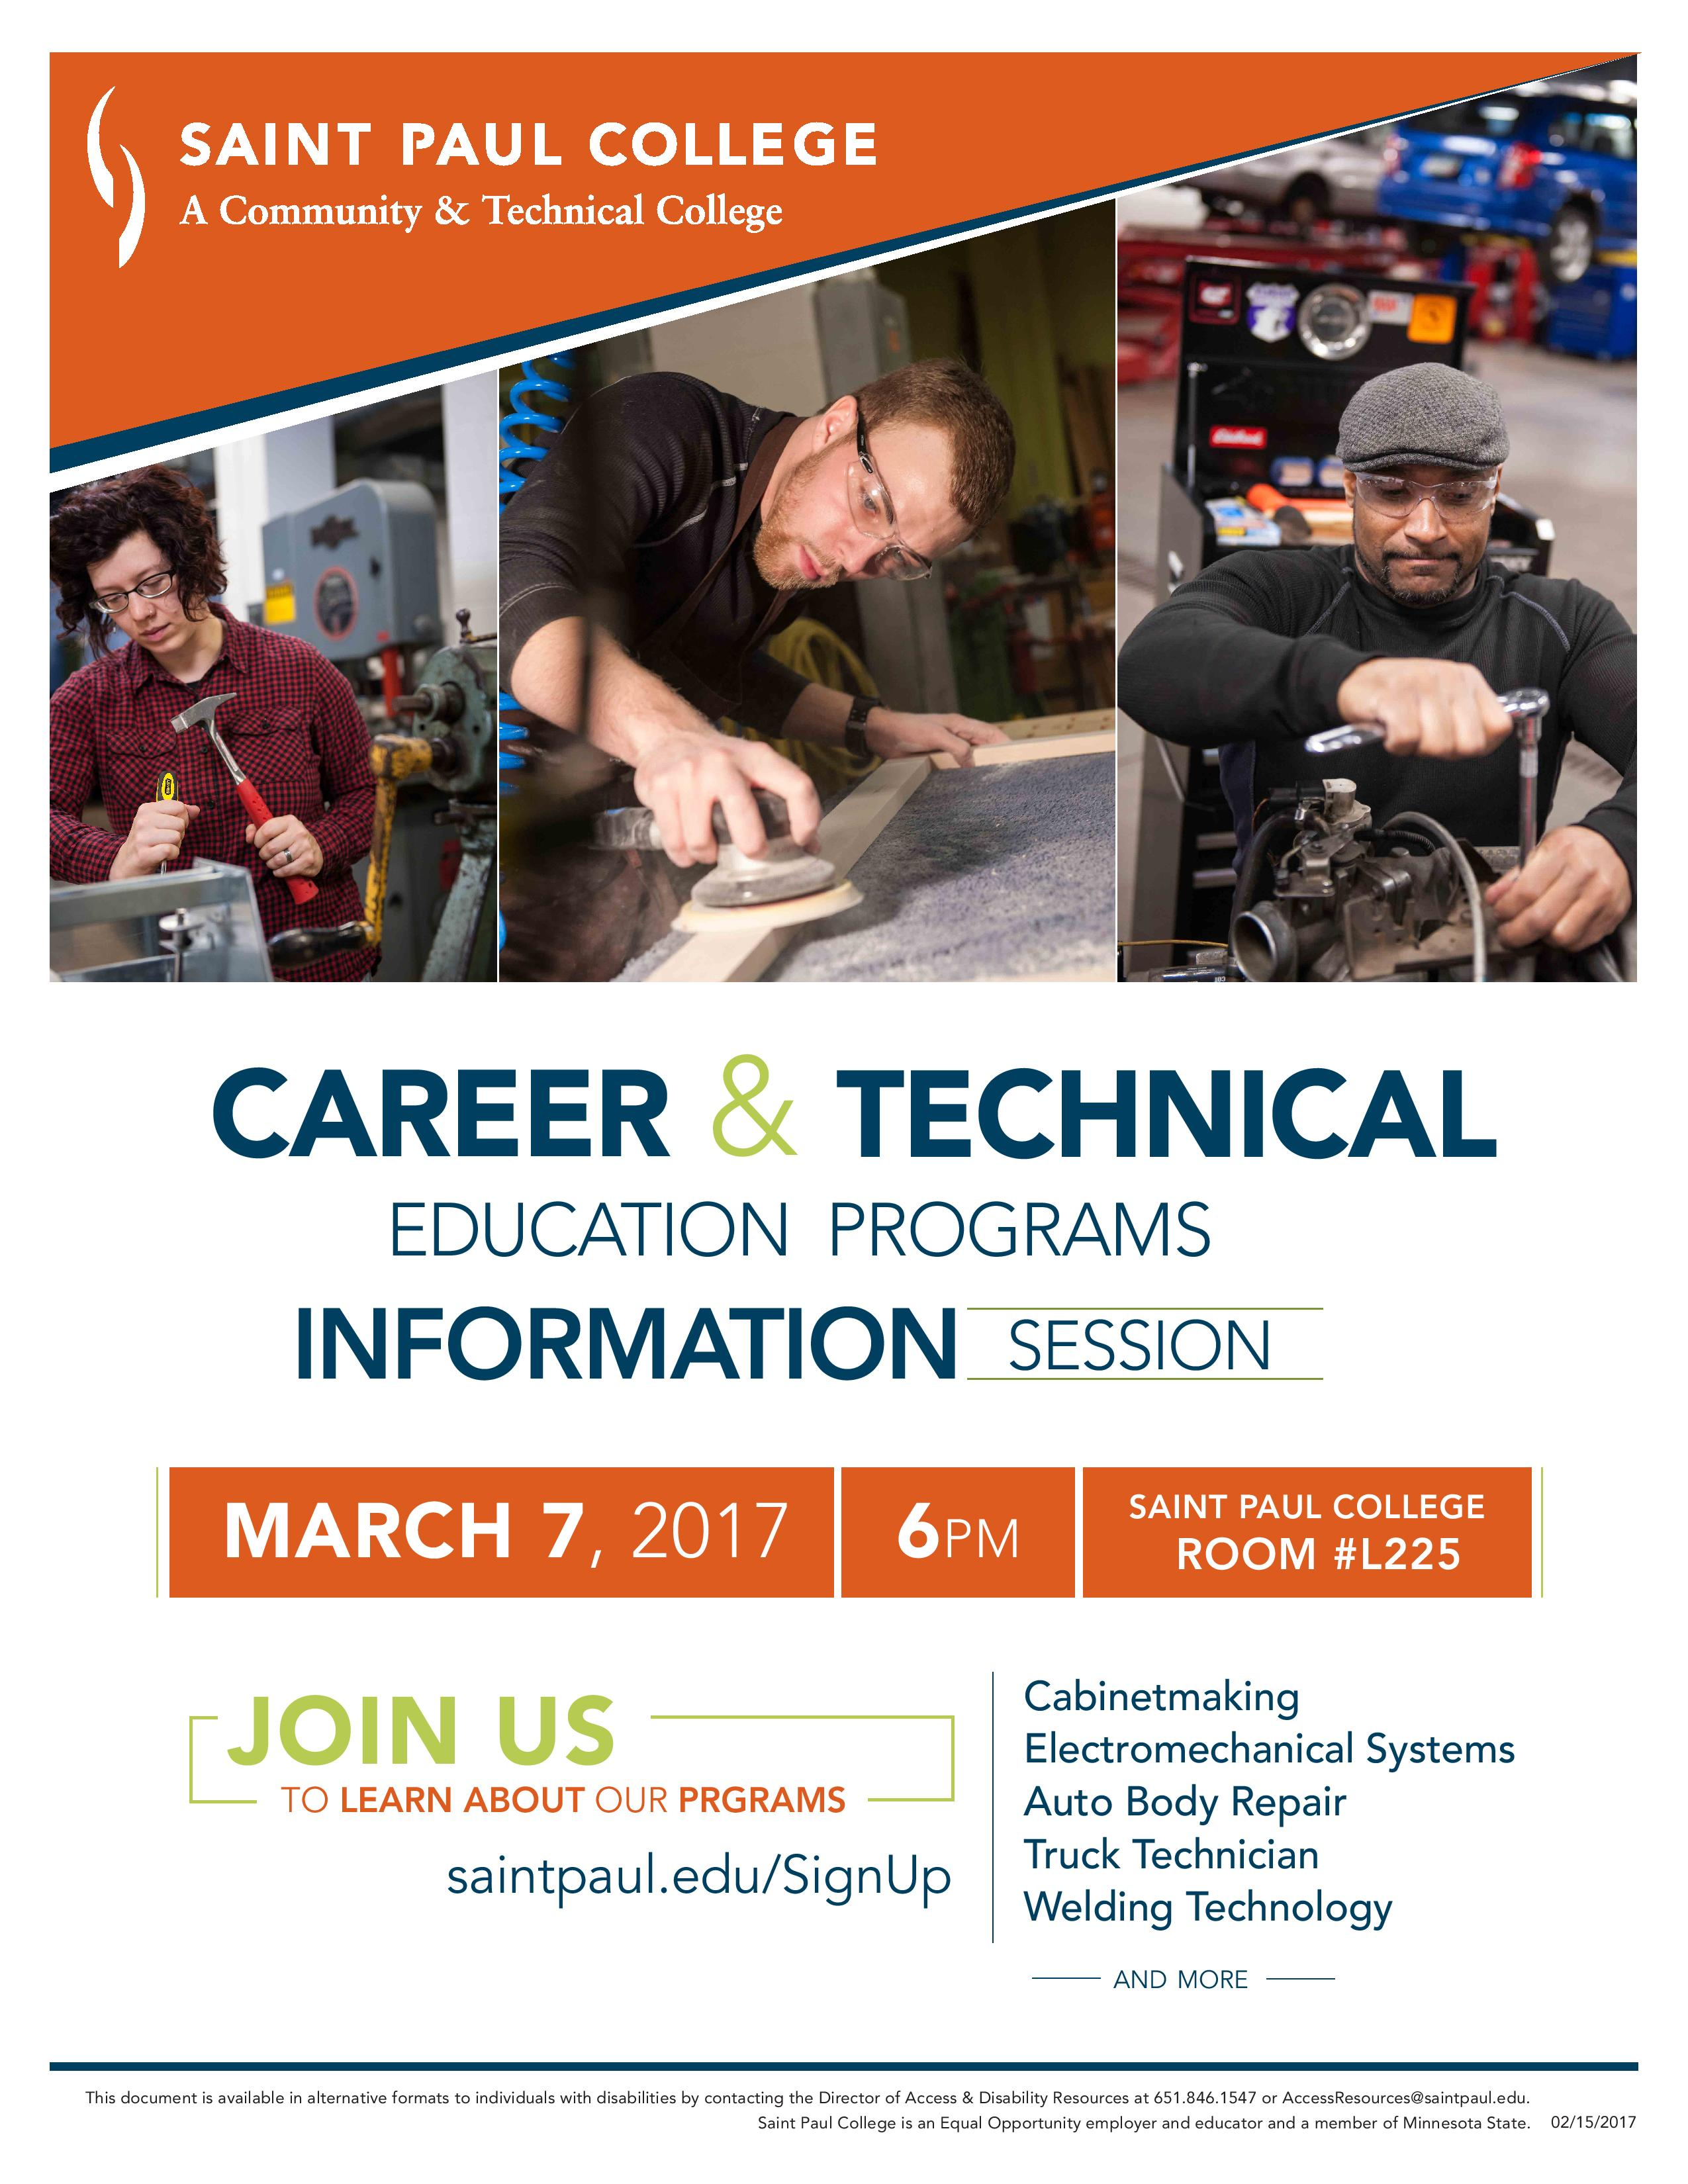 Career_and_Technical_Education_Info_Session_Flyer_March_2017-page-001.jpg